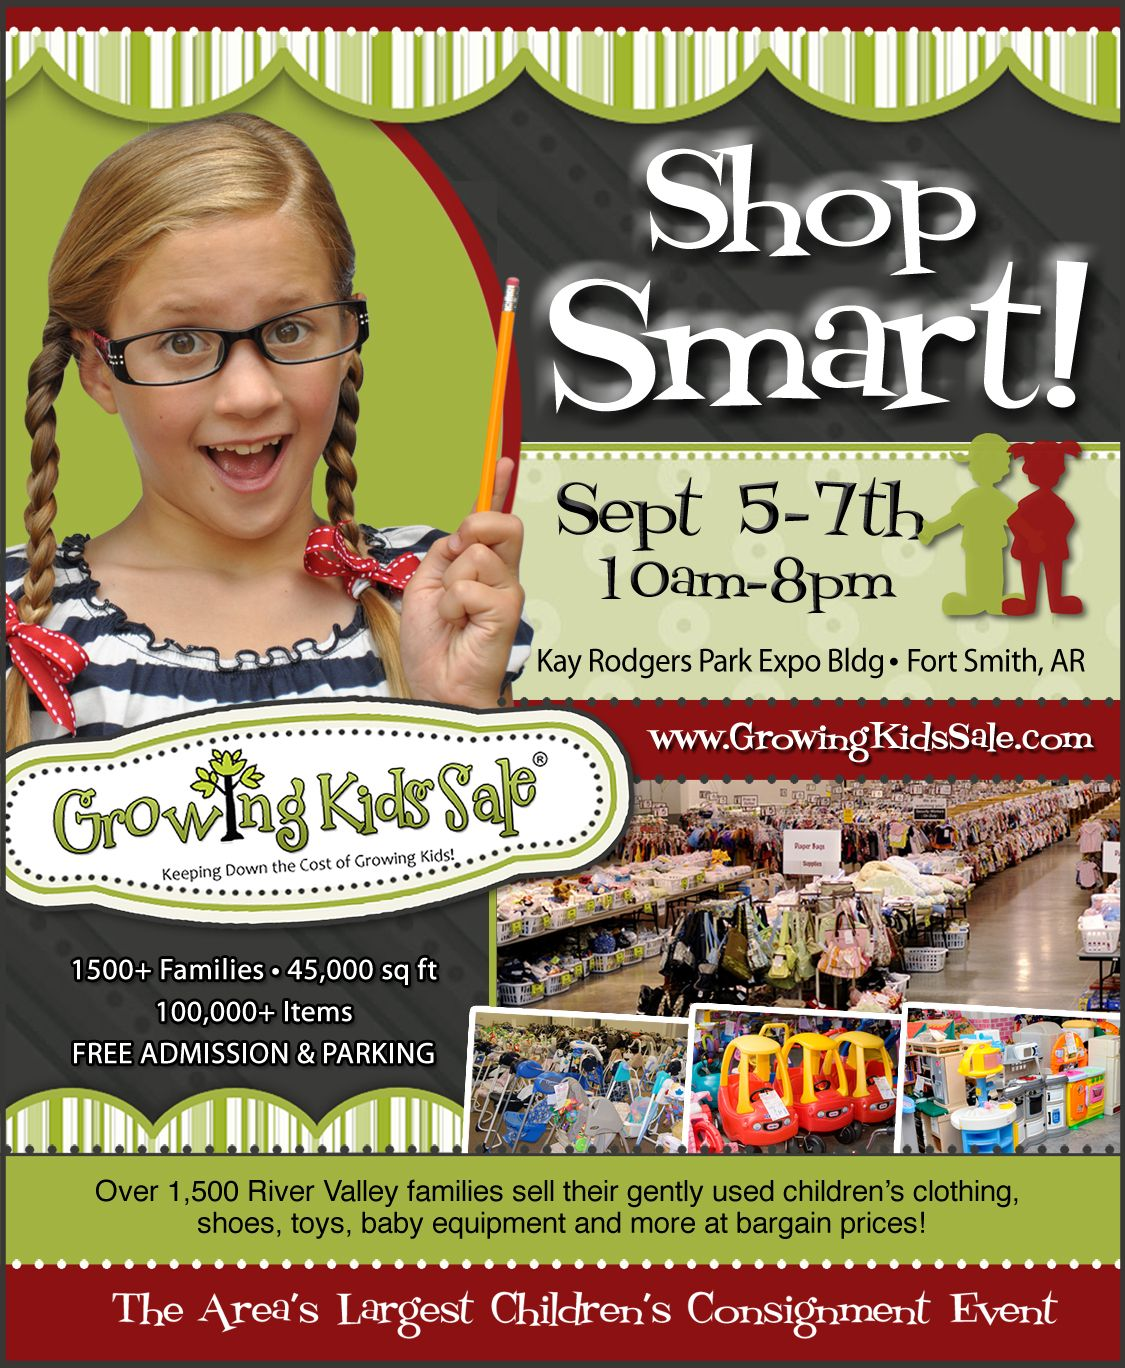 2,000 local families consigning their gently-used children's clothing, shoes, toys, baby equipment, furniture & more!  The Growing Kids Consignment Event in Fort Smith, Arkansas!  September 5-7th, 2013. 10am-8pm daily. Kay Rodgers Park Expo. Free admission & parking. Don't miss it!!! www.GrowingKidsSale.com